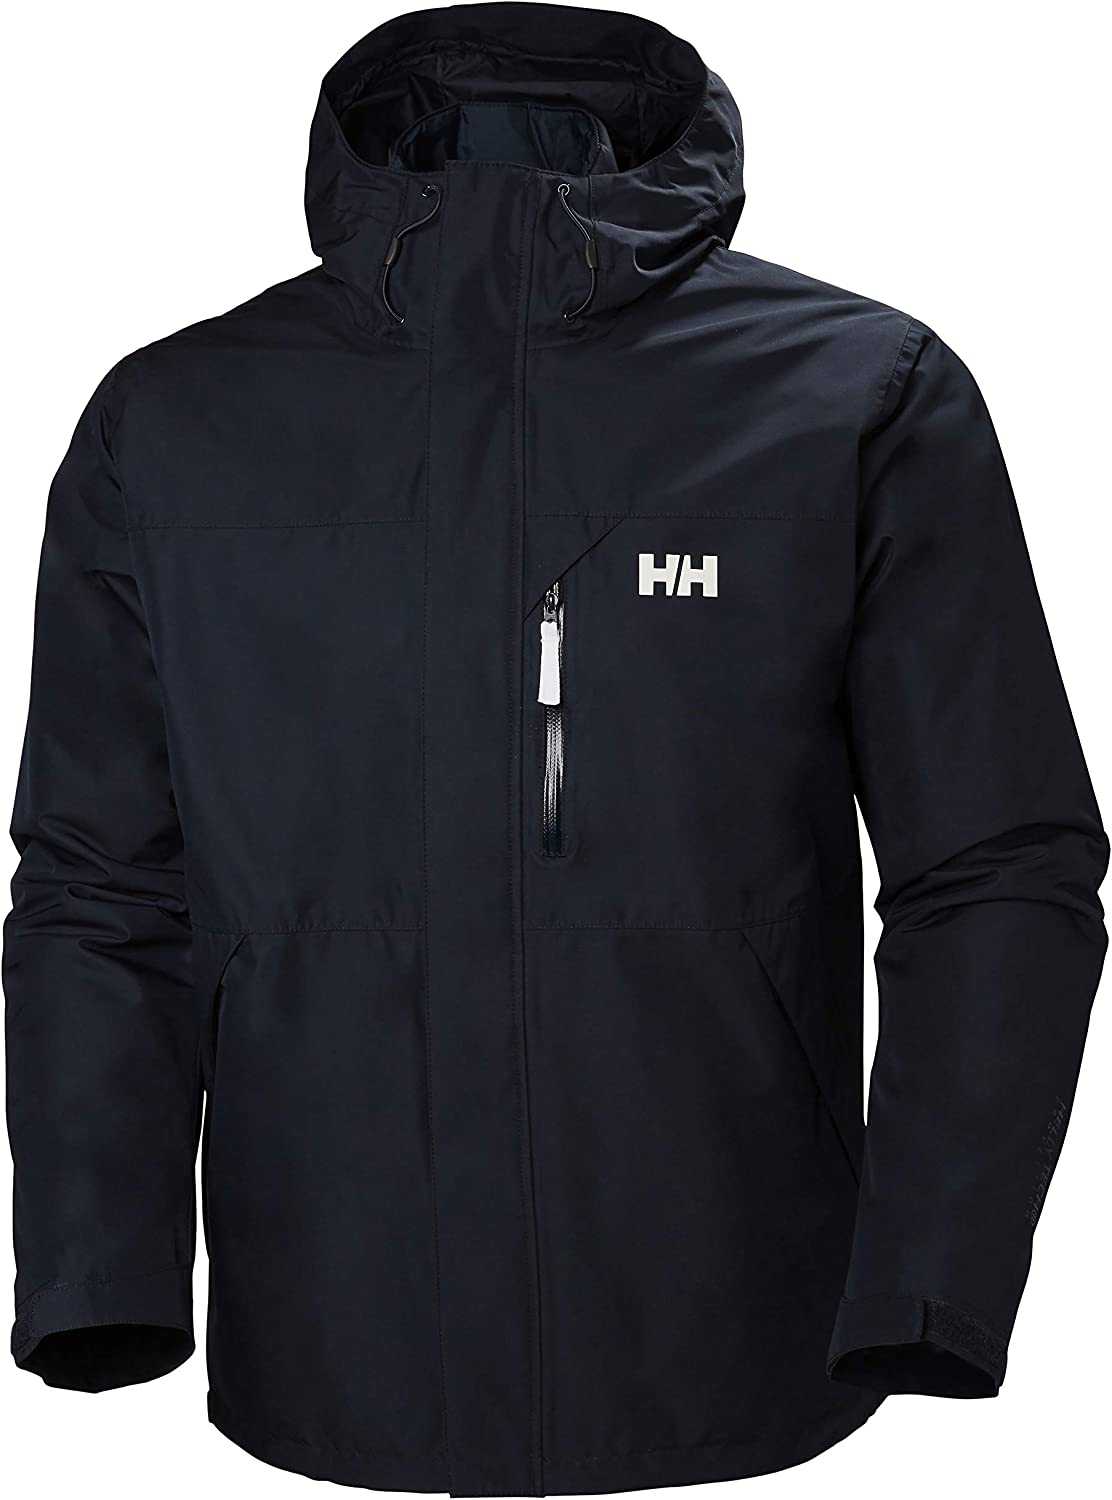 Helly-Hansen Squamish Cis Jacket Component Insulation System